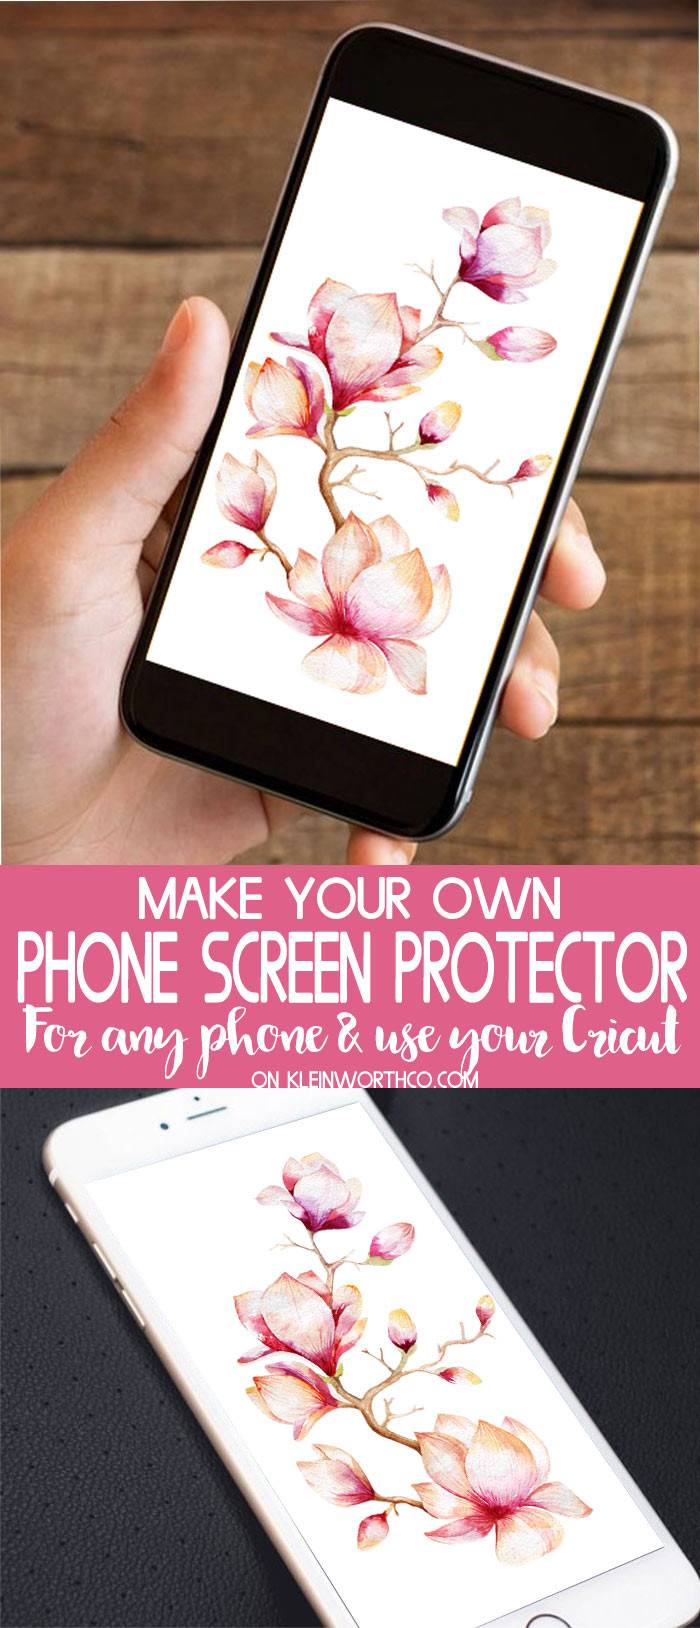 Best ideas about DIY Screen Protector . Save or Pin DIY Phone Screen Protector Kleinworth & Co Now.